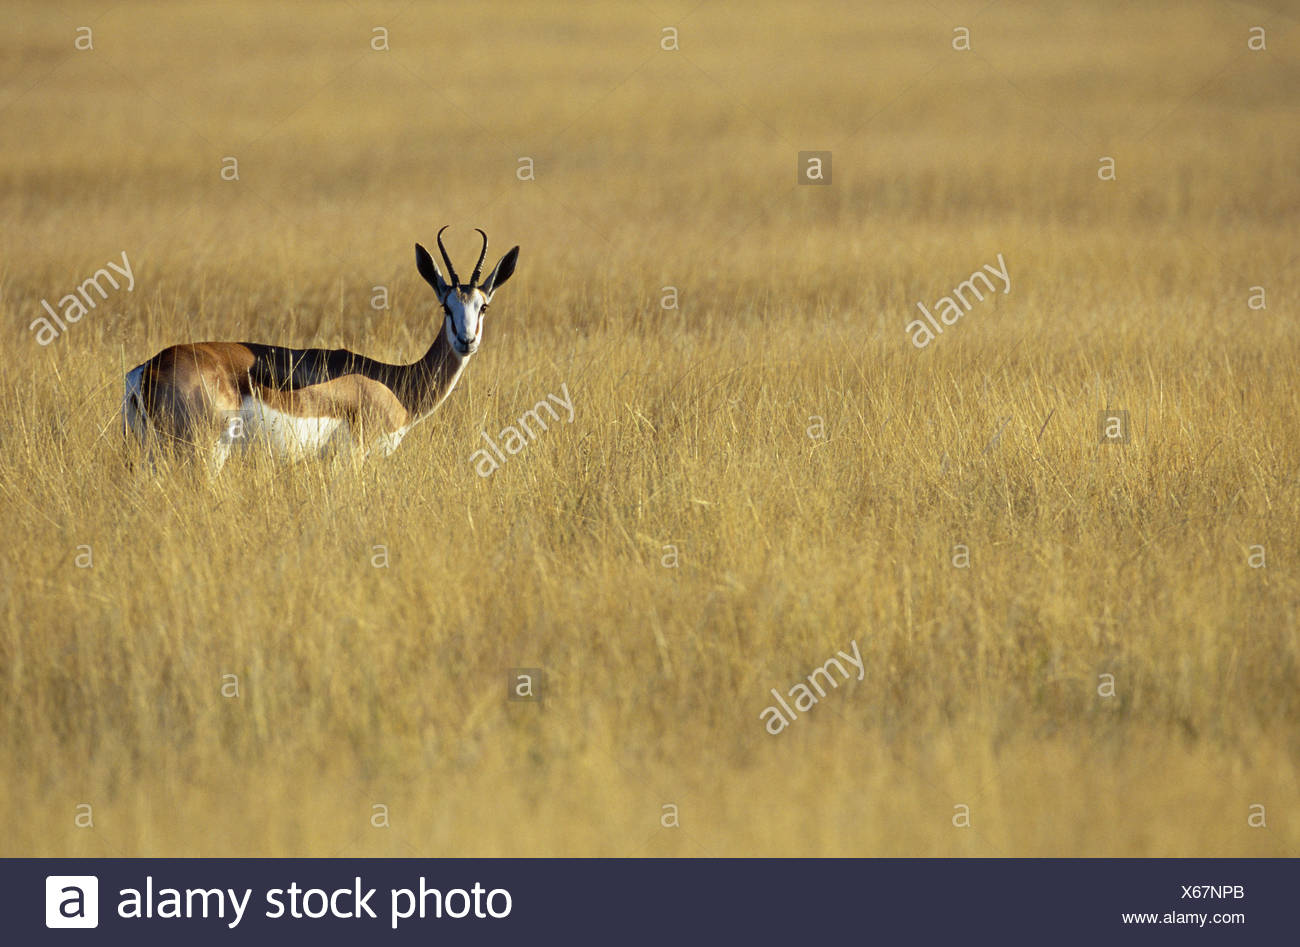 Gazelle - the animal of the steppes and deserts 68